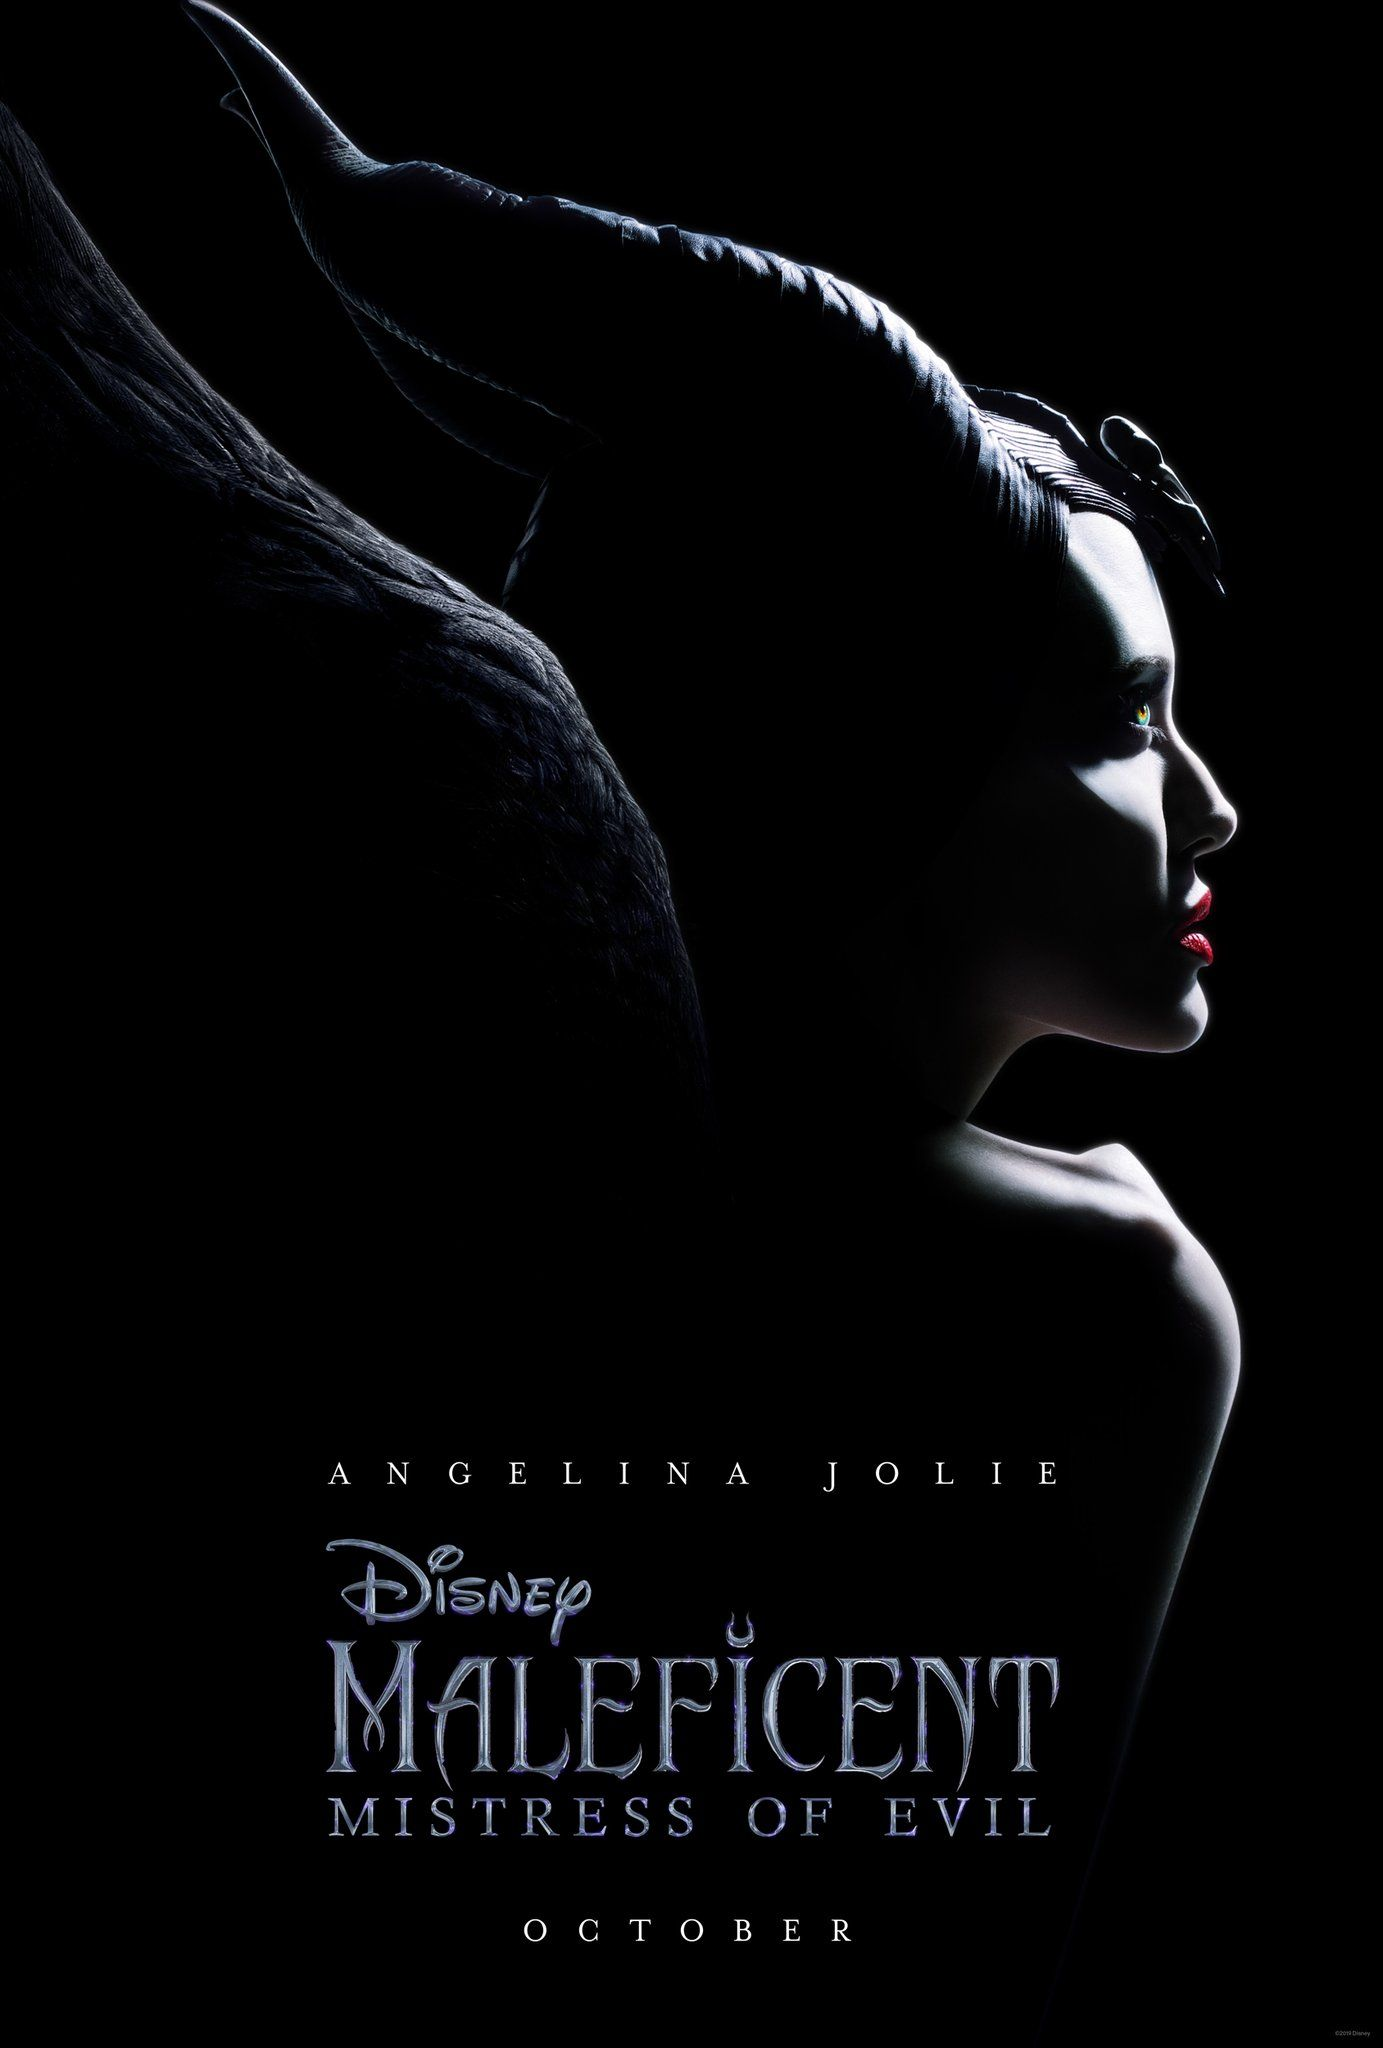 maleficent 2 poster, maleficent 2